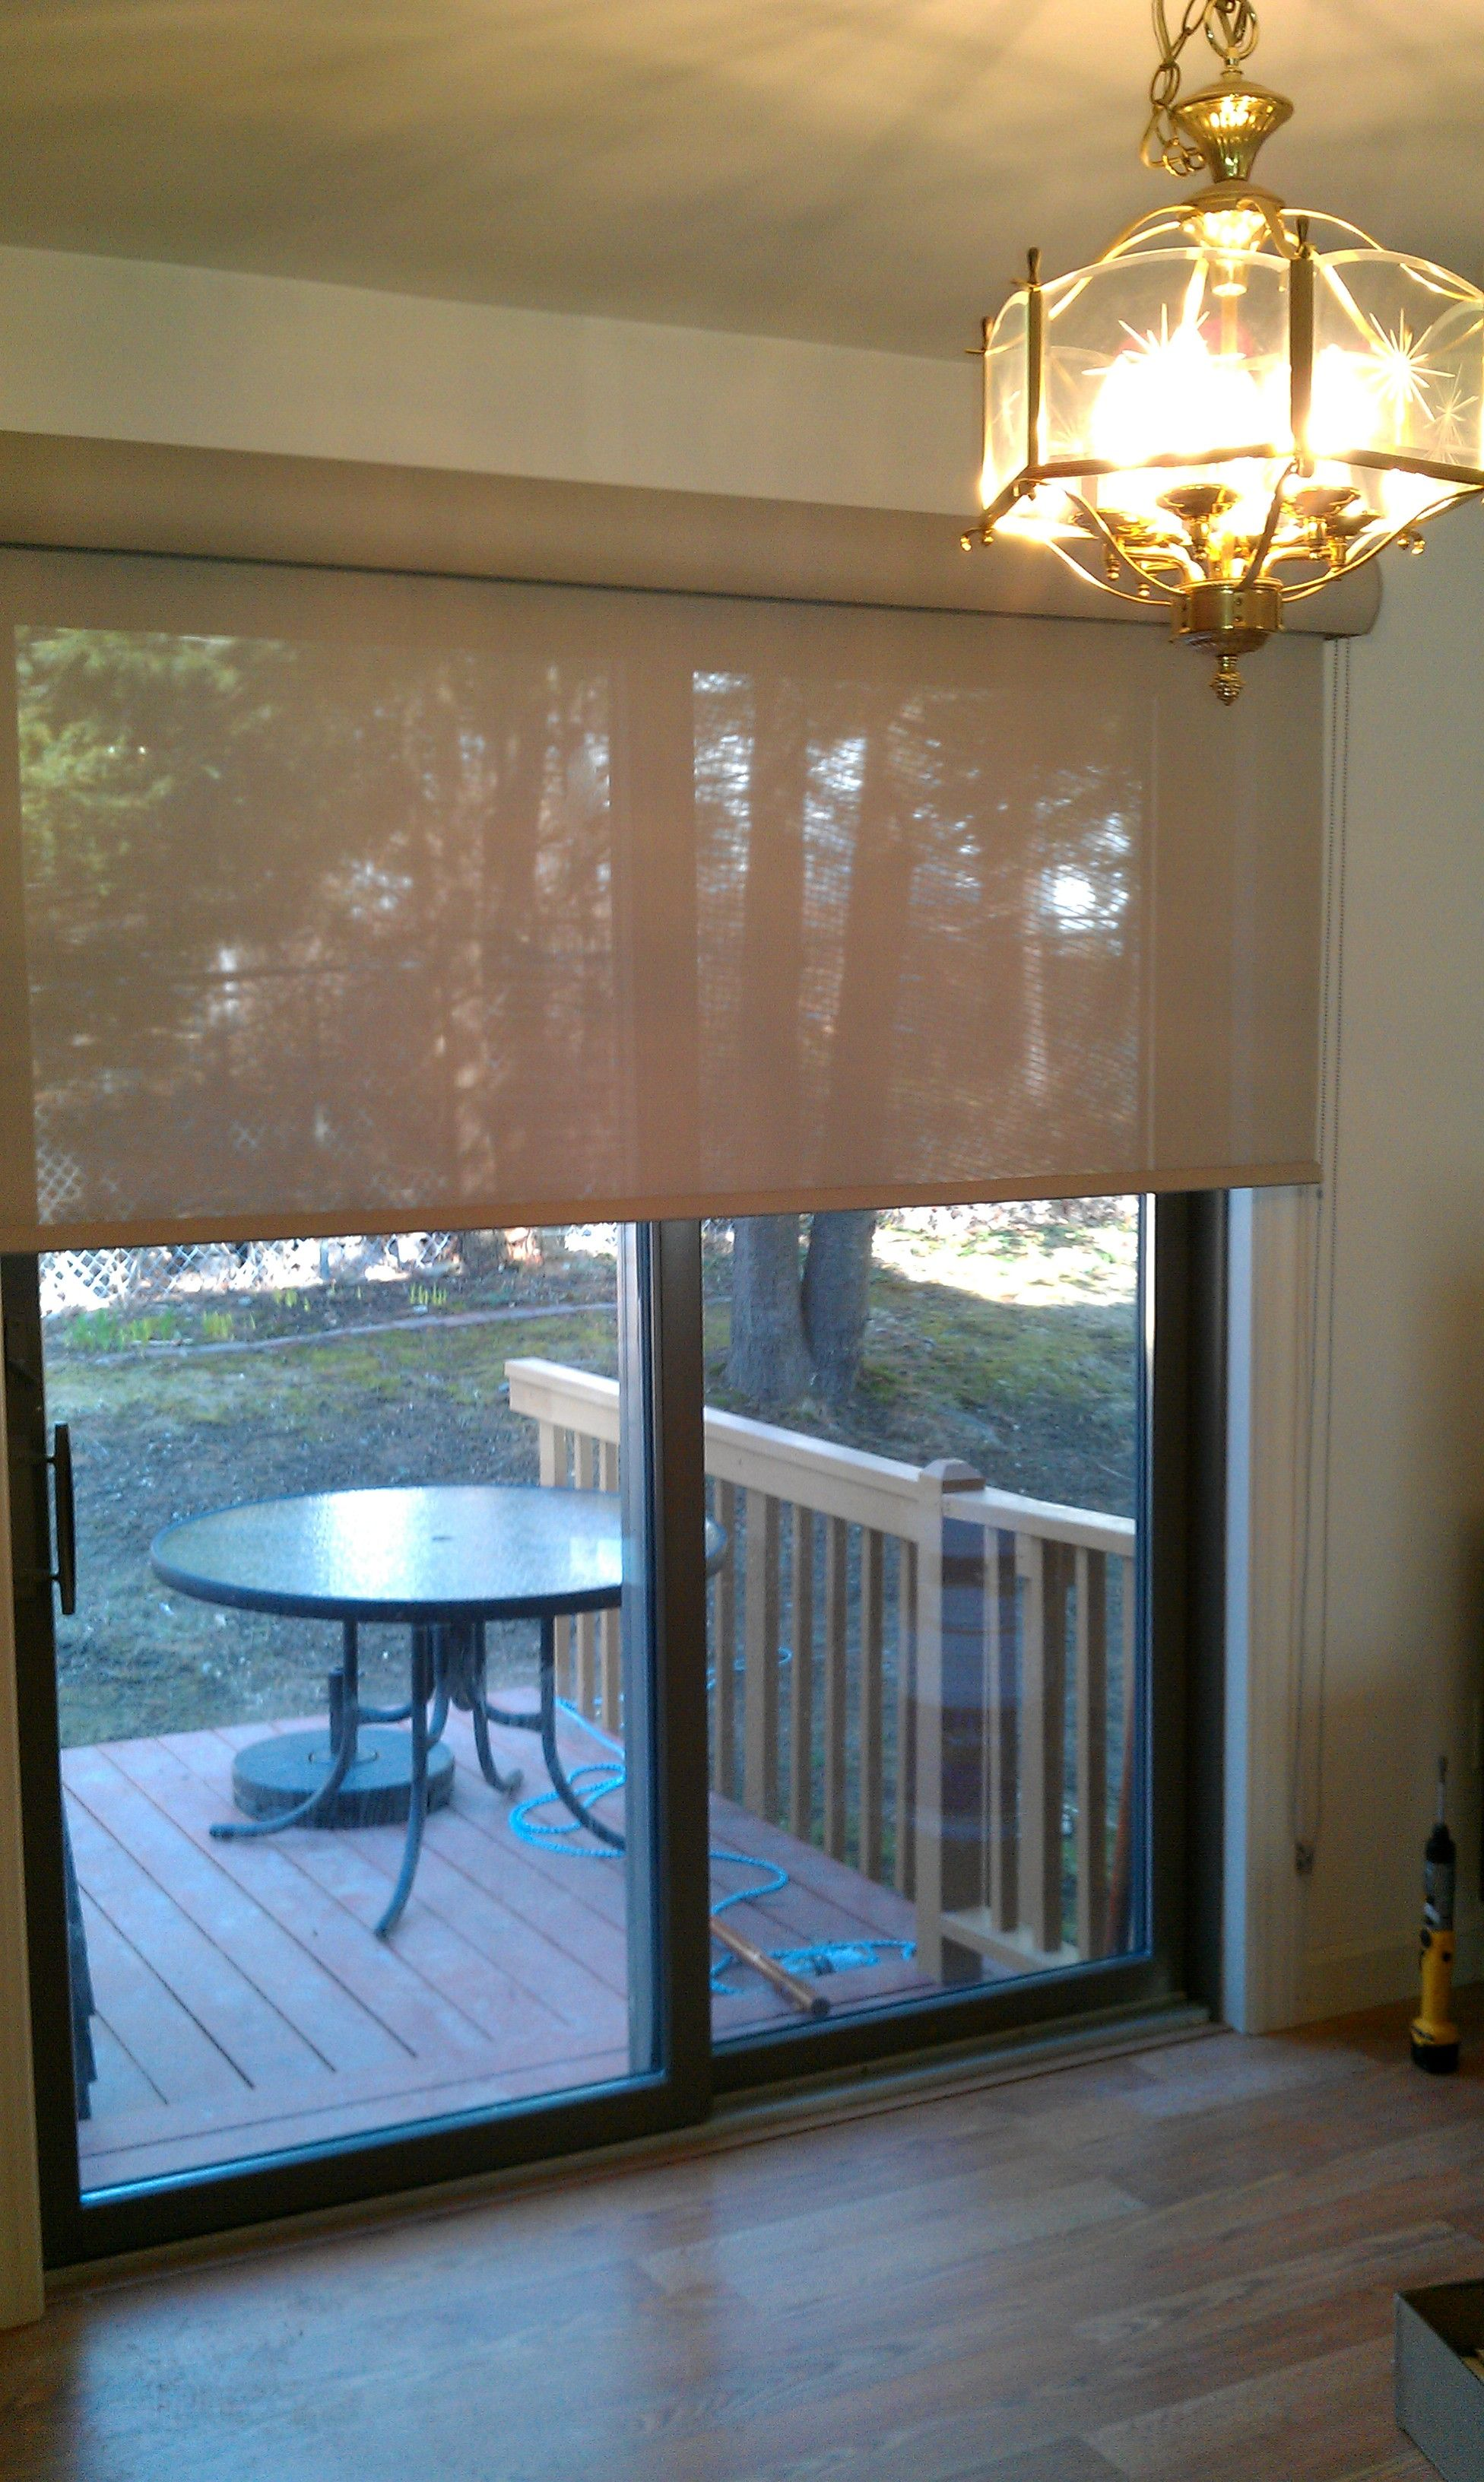 filtering doors window light blinds white door tips premier treatments for glass patio ideas vertical sliding